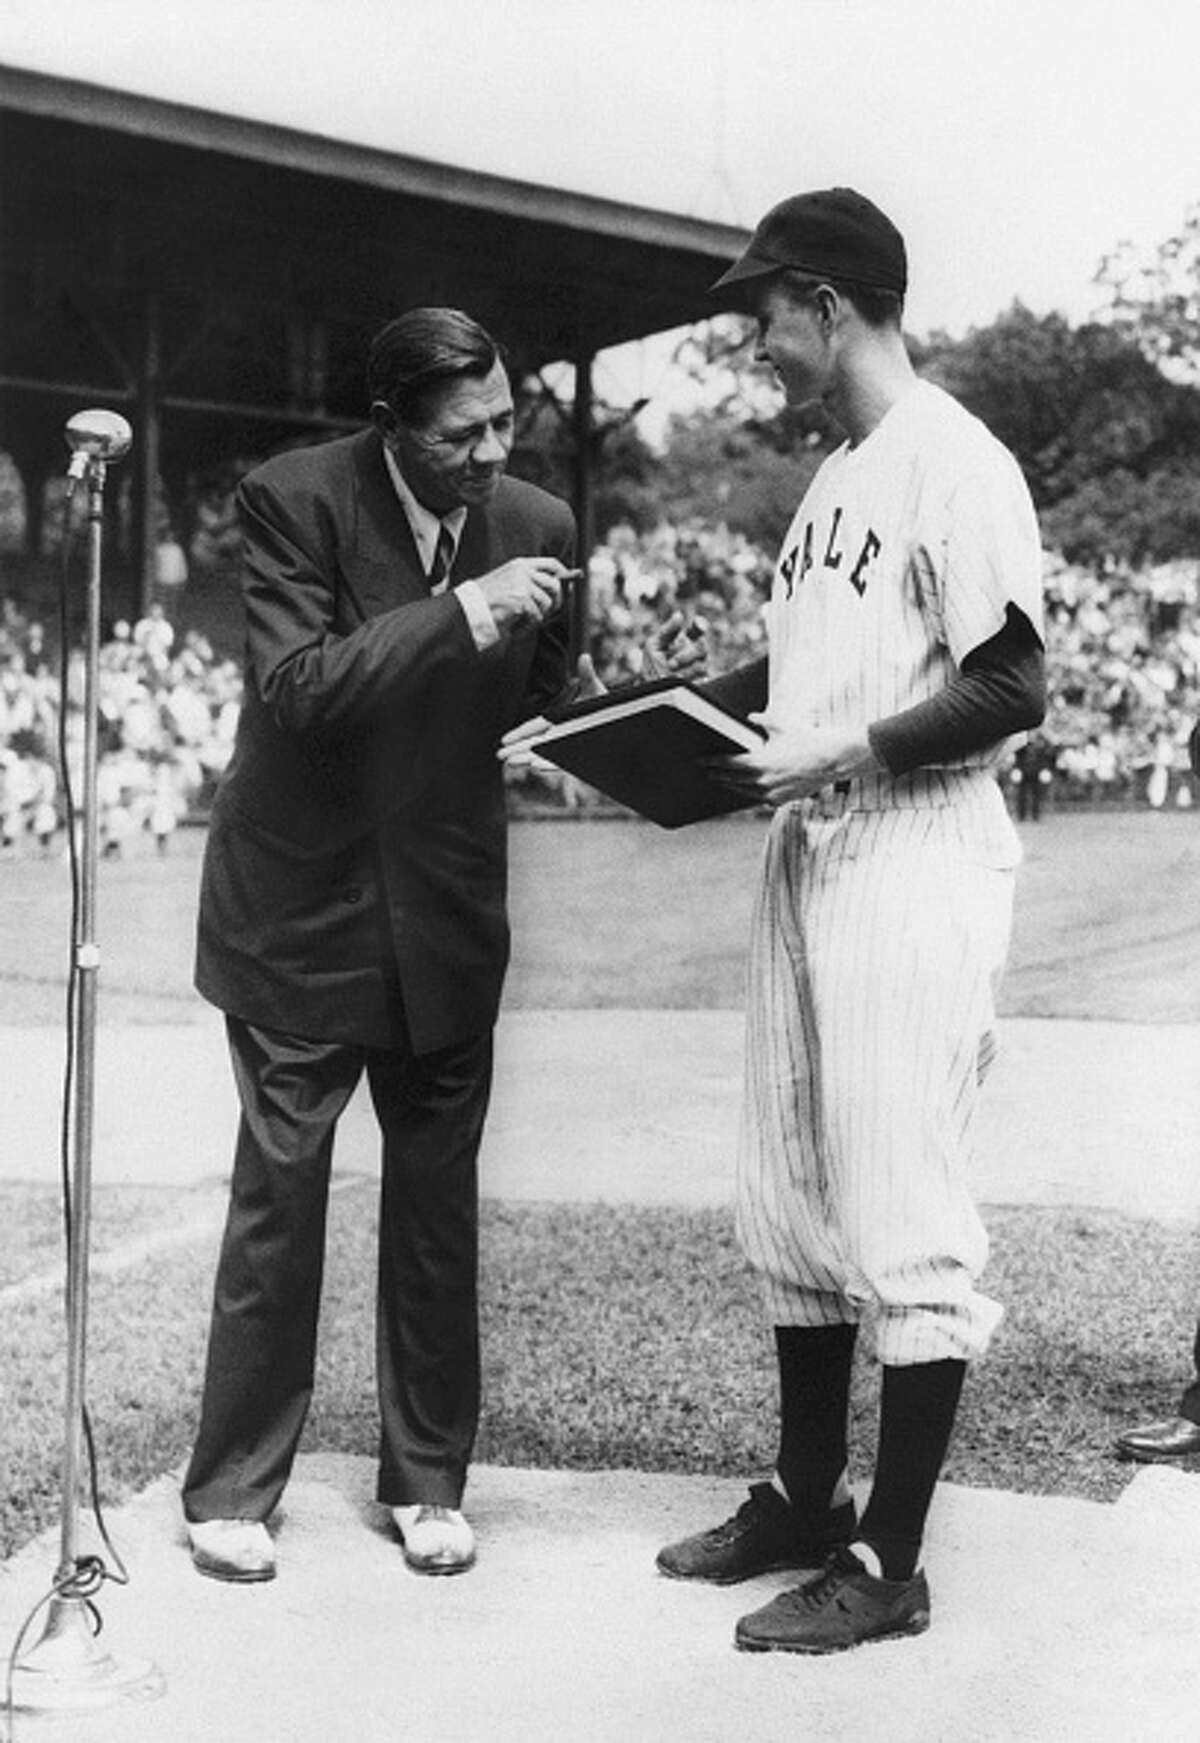 """(Original Caption) 1948-New Haven, CT- George Bush (R) welcomes Babe Ruth (L) at a pre-game ceremony in 1948 at the Yale University field. Bush, captain of the 1948 varsity baseball team, presented a special citation to the """"Babe"""" and in return the legendary home-run king presented a manuscript of The Babe Ruth Story, his biography, for the Yale archives."""